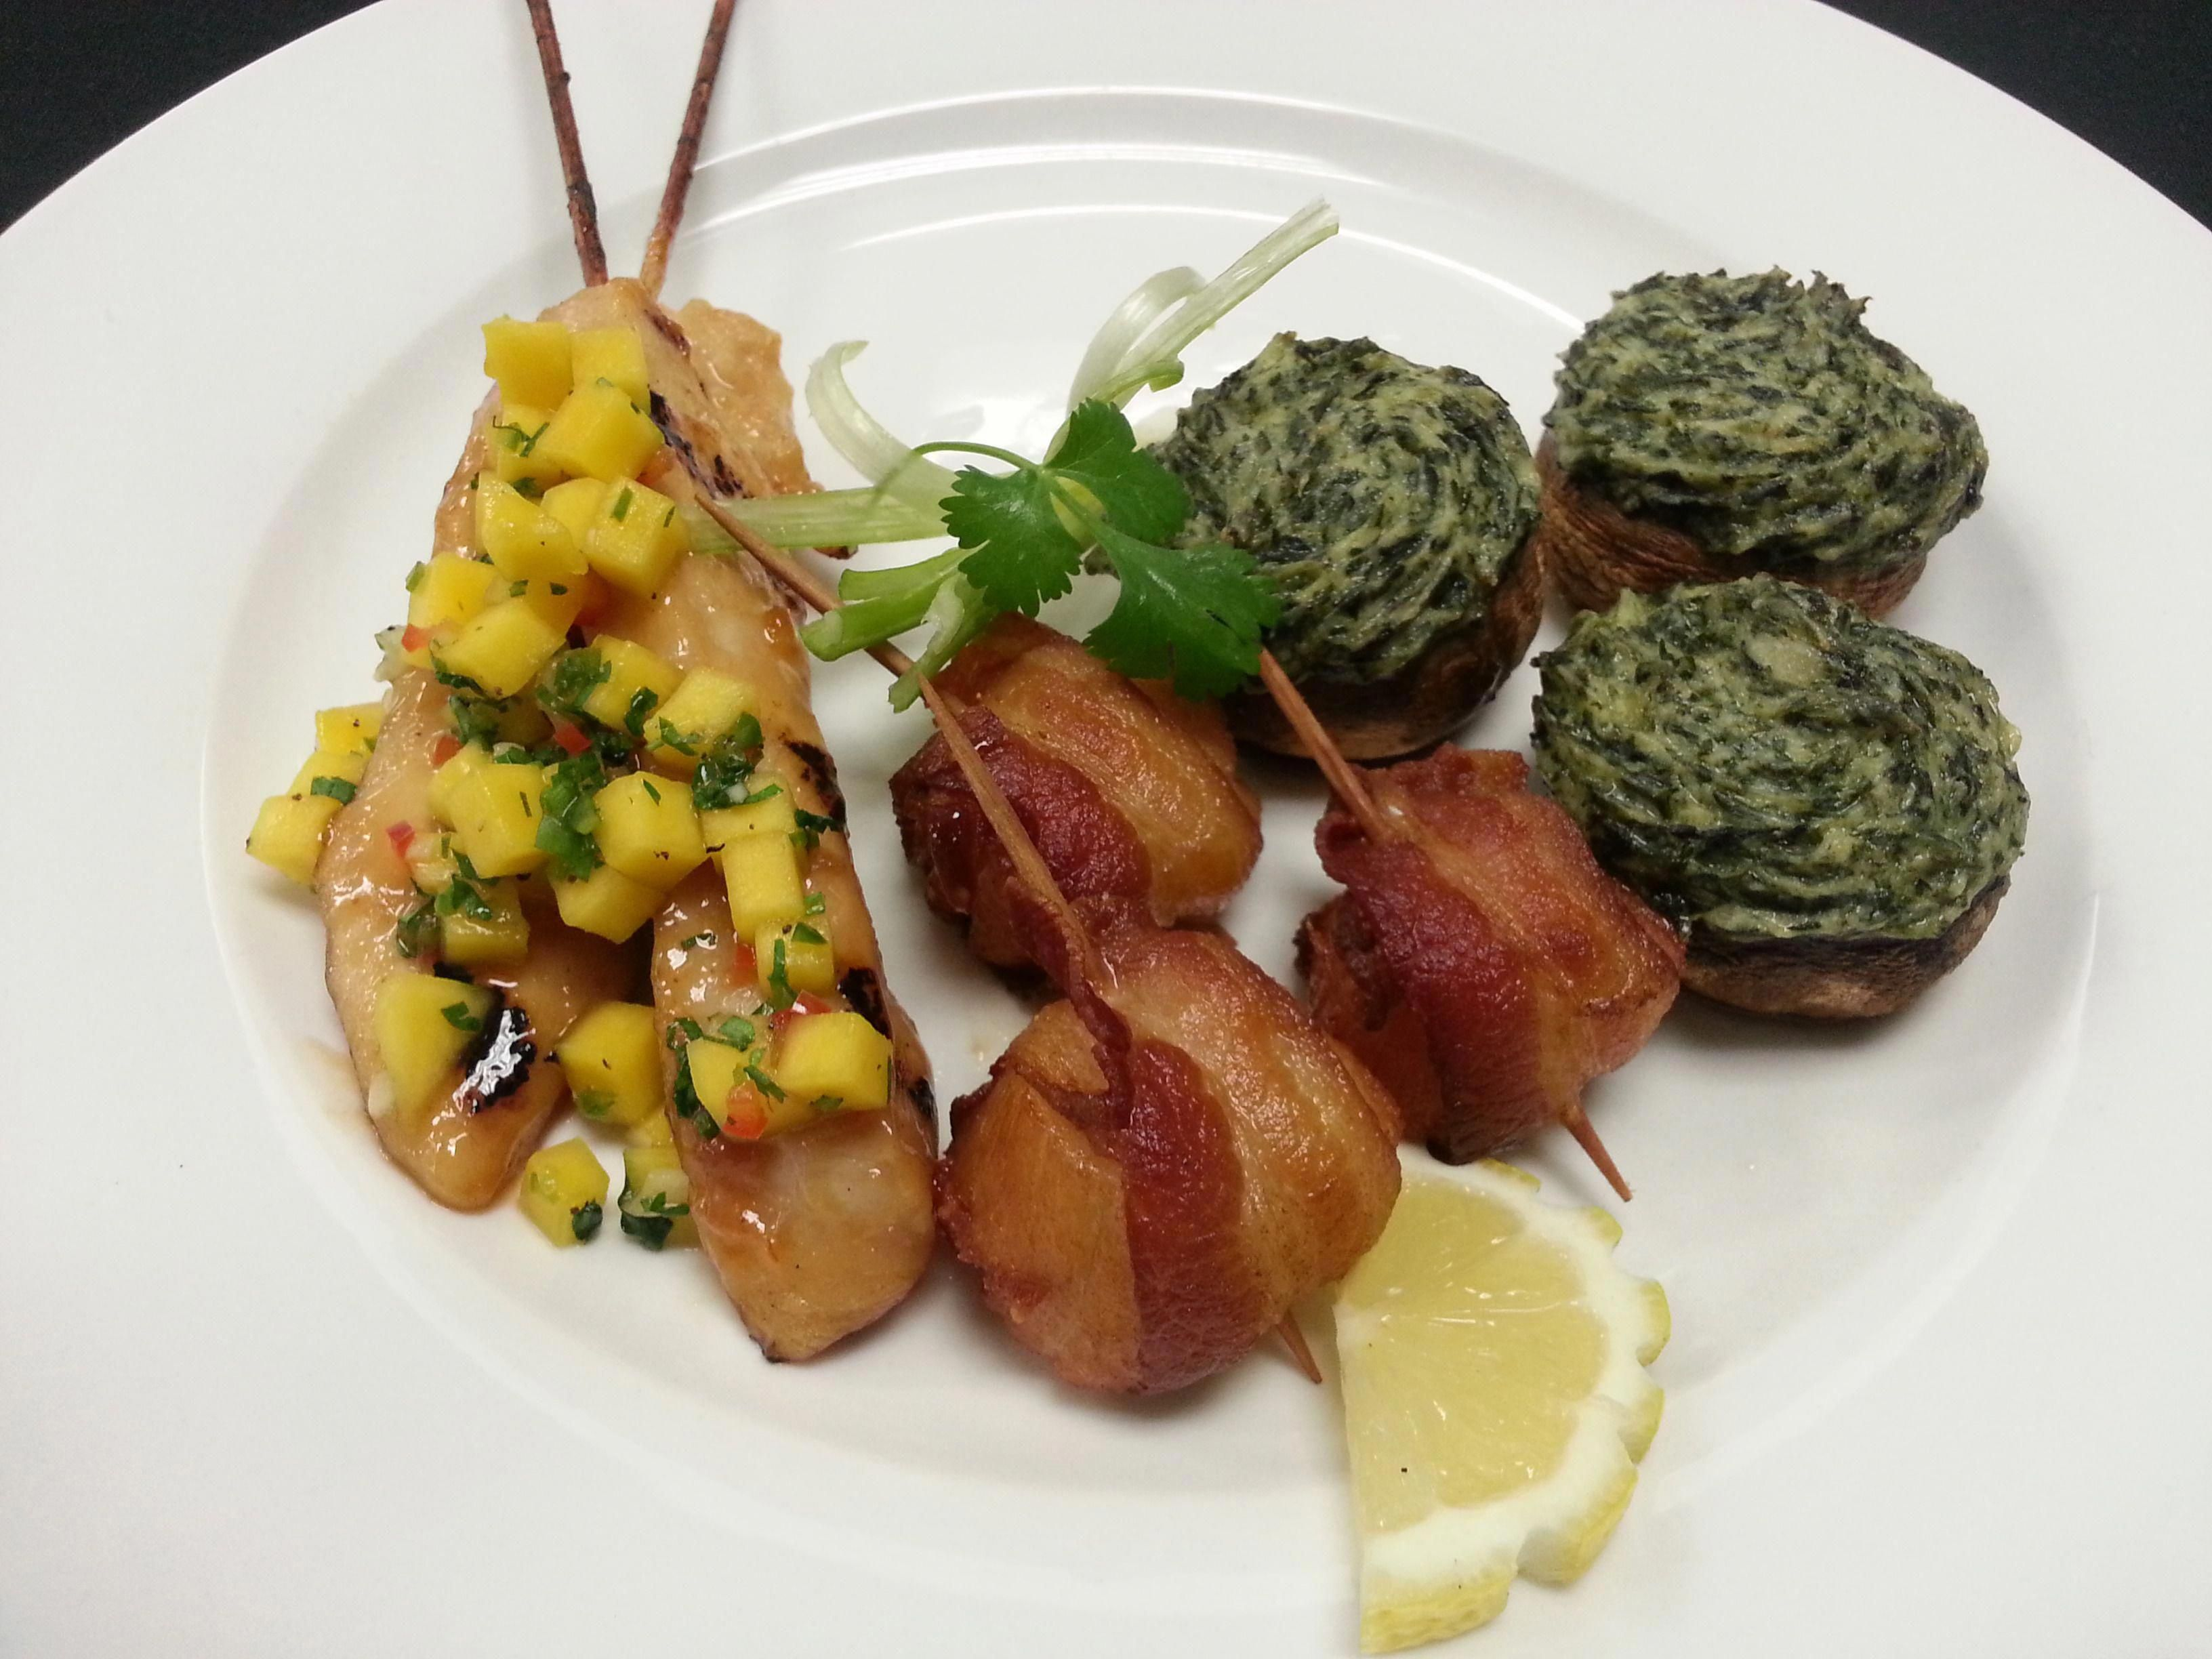 Grilled Chicken Skewers with Mango Salsa, Sea Scallops Wrapped with Bacon, and Stuffed Mushrooms Florentine #food #appetizers #horsdoeuvres #catering #chicken #mango #mangosalsa #seascallops #scallops #bacon #mushrooms #stuffedmushrooms #florentine #spinach #cheese #bitesize #yummy #foodporn #foodpics #delicious #bitesizeappetizers #appetizersbitesize